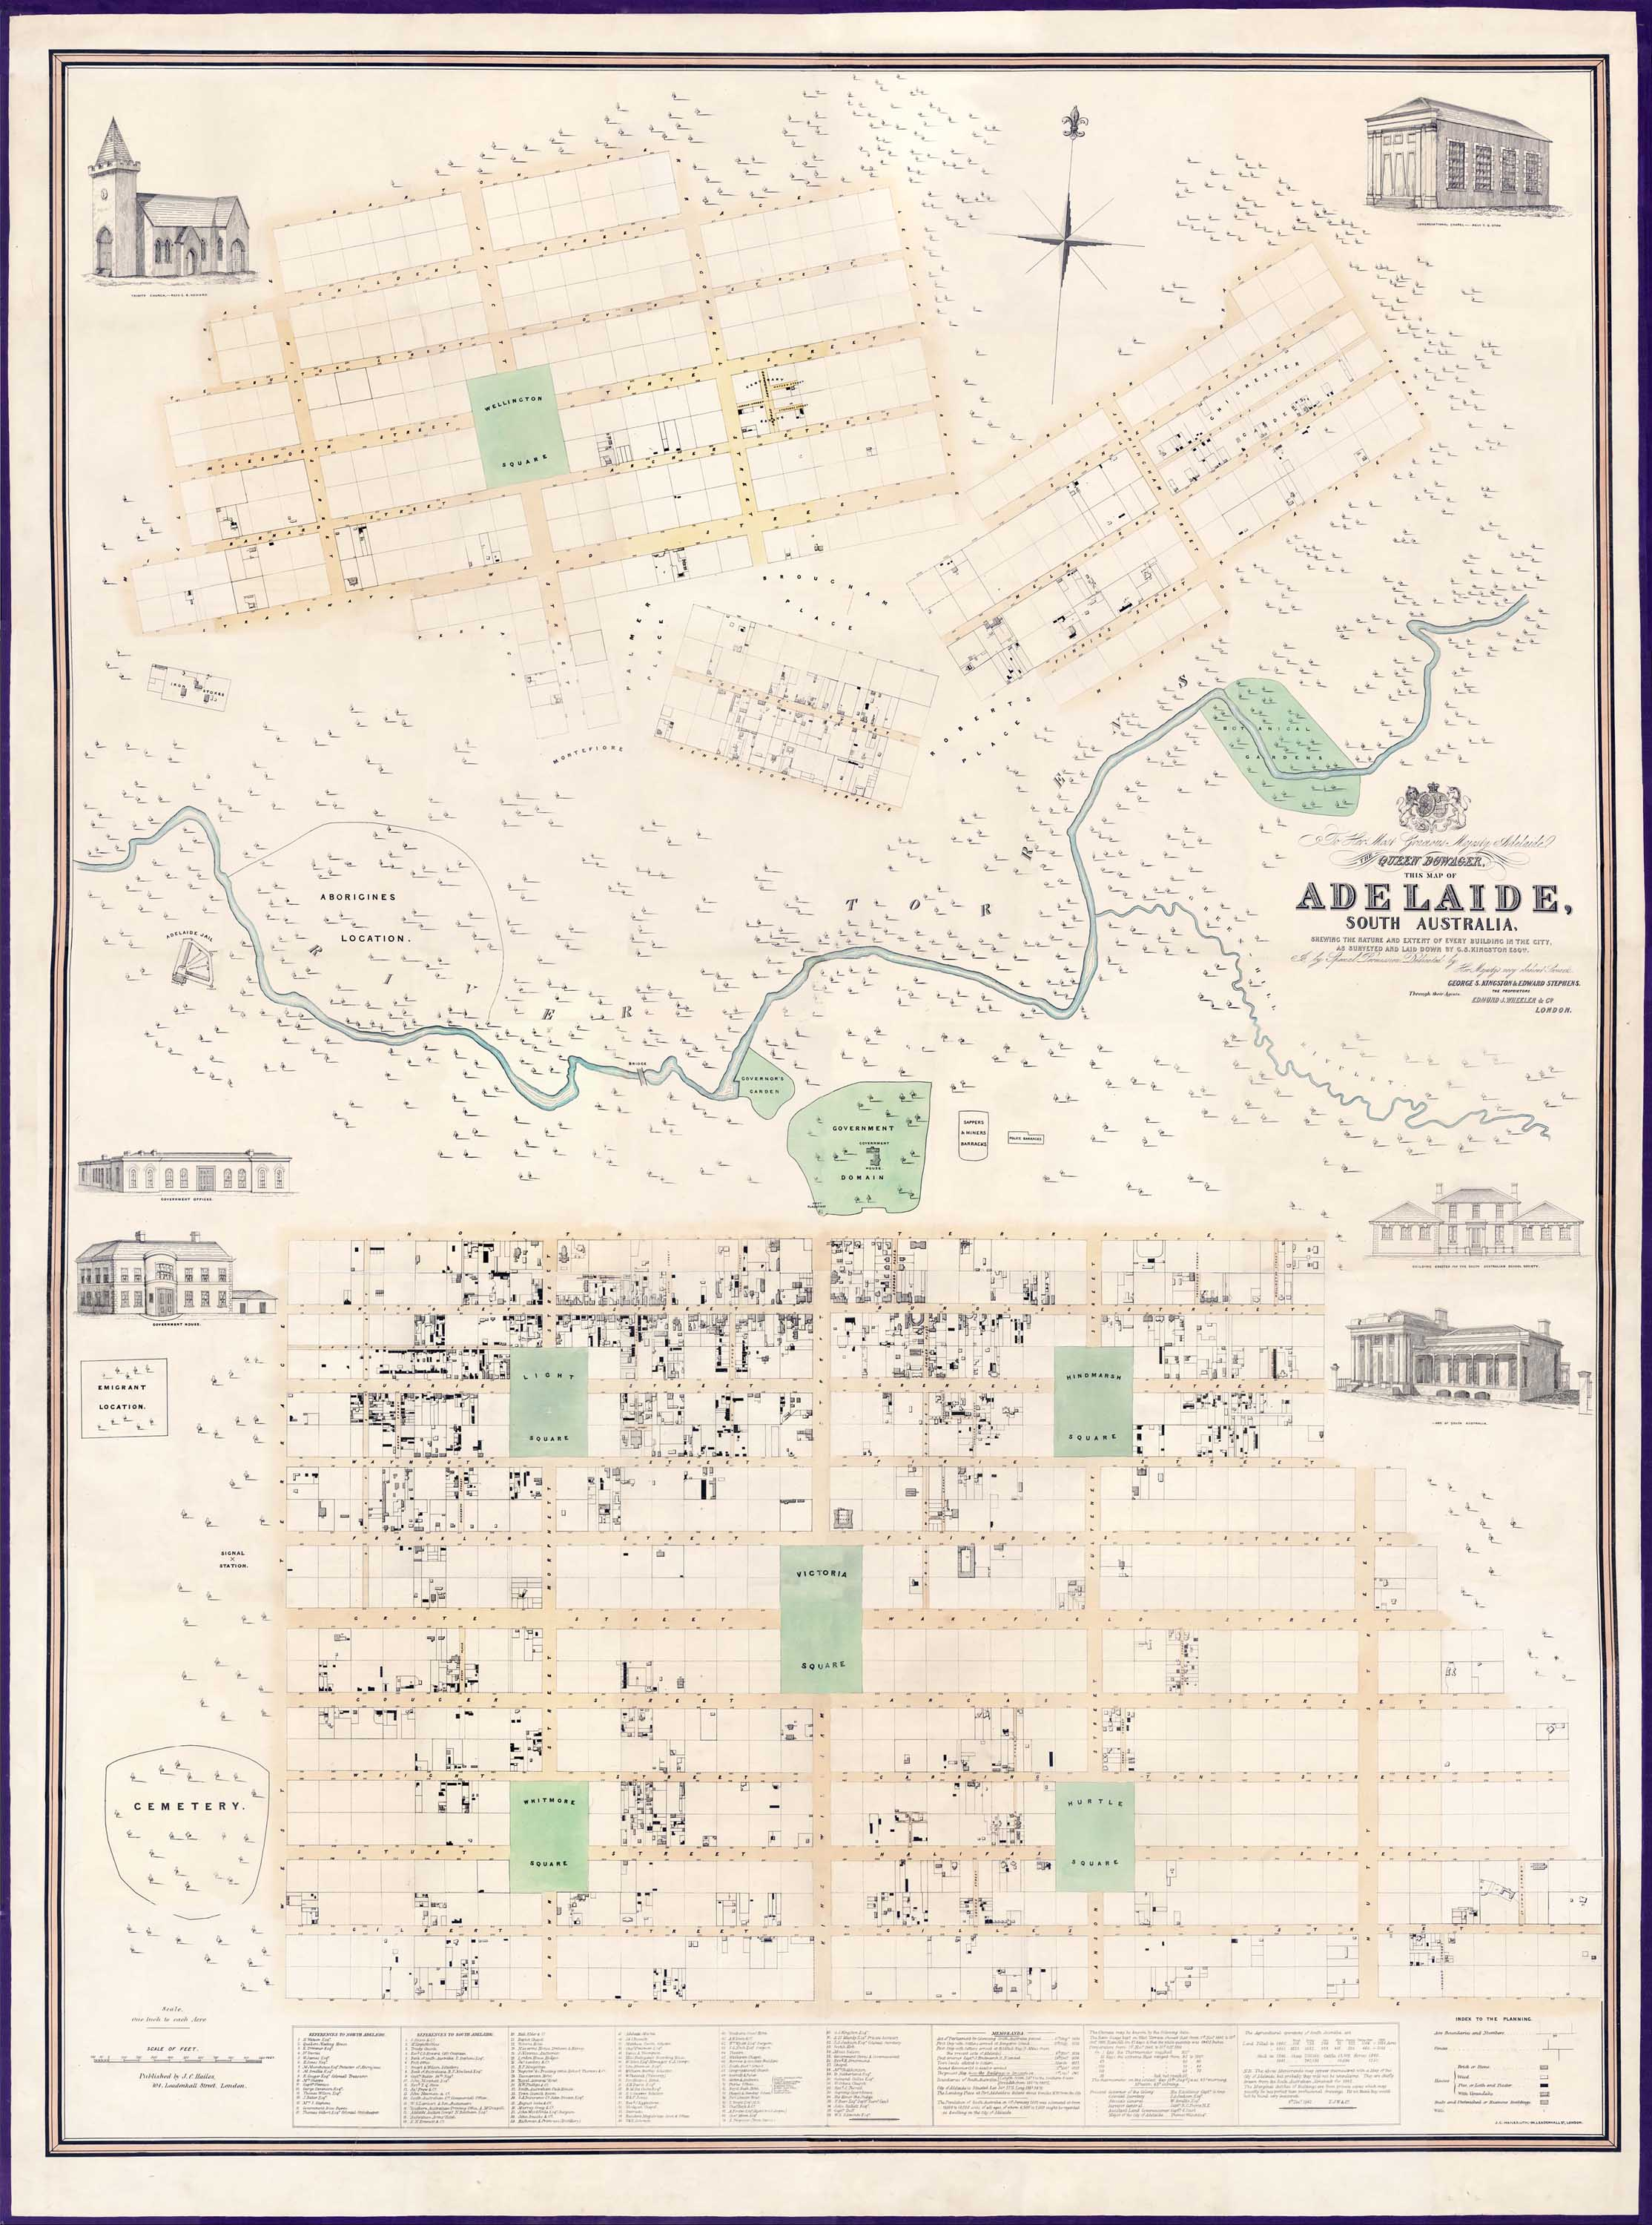 Adelaide : Kingston Map